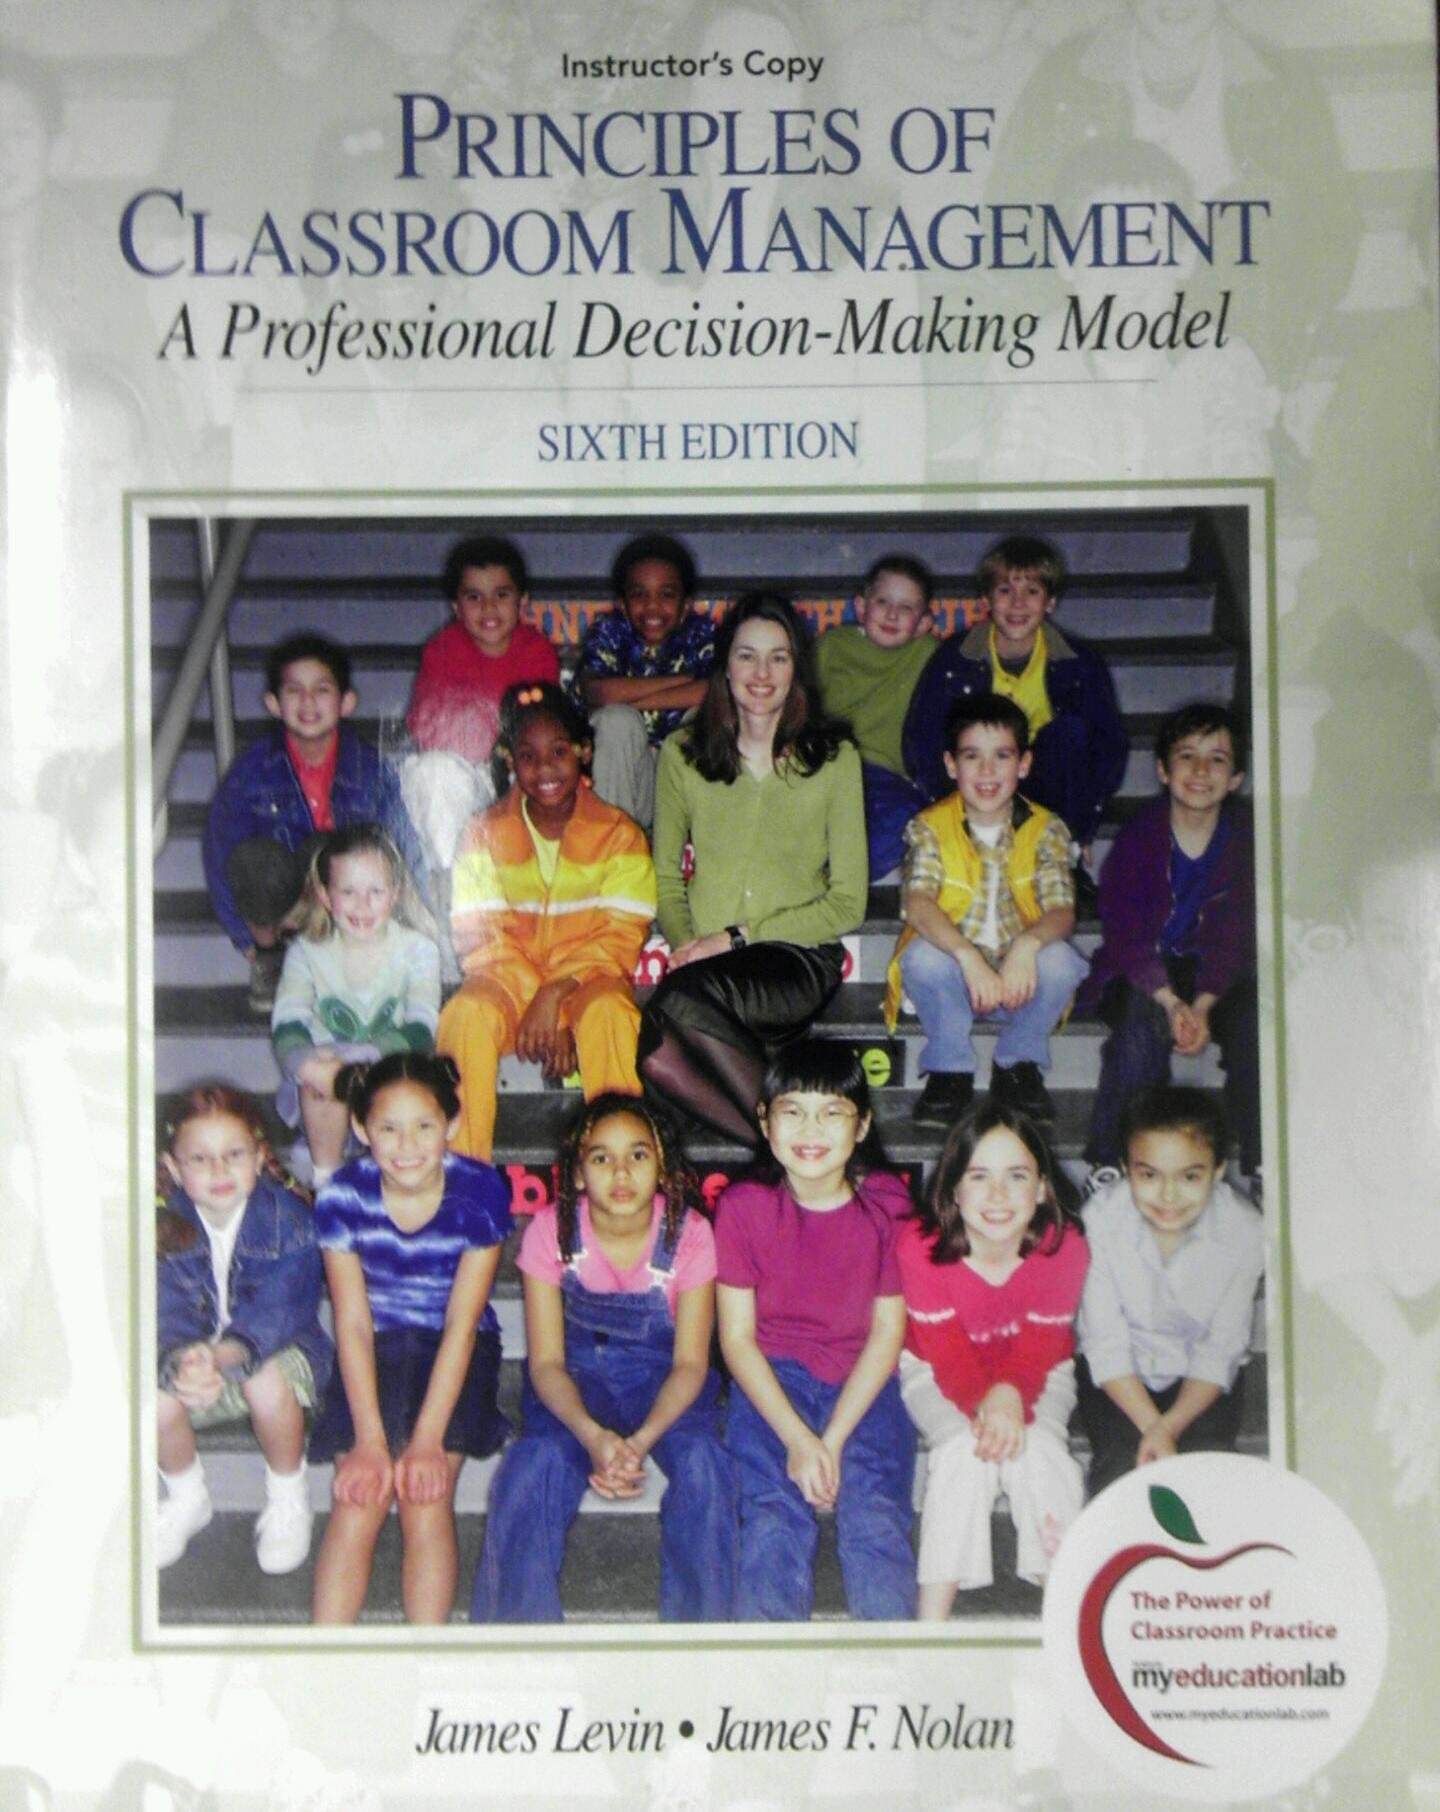 Instructor's Copy Principles of Classroom Management: A Professional Decision-Making Model (6th edition) pdf